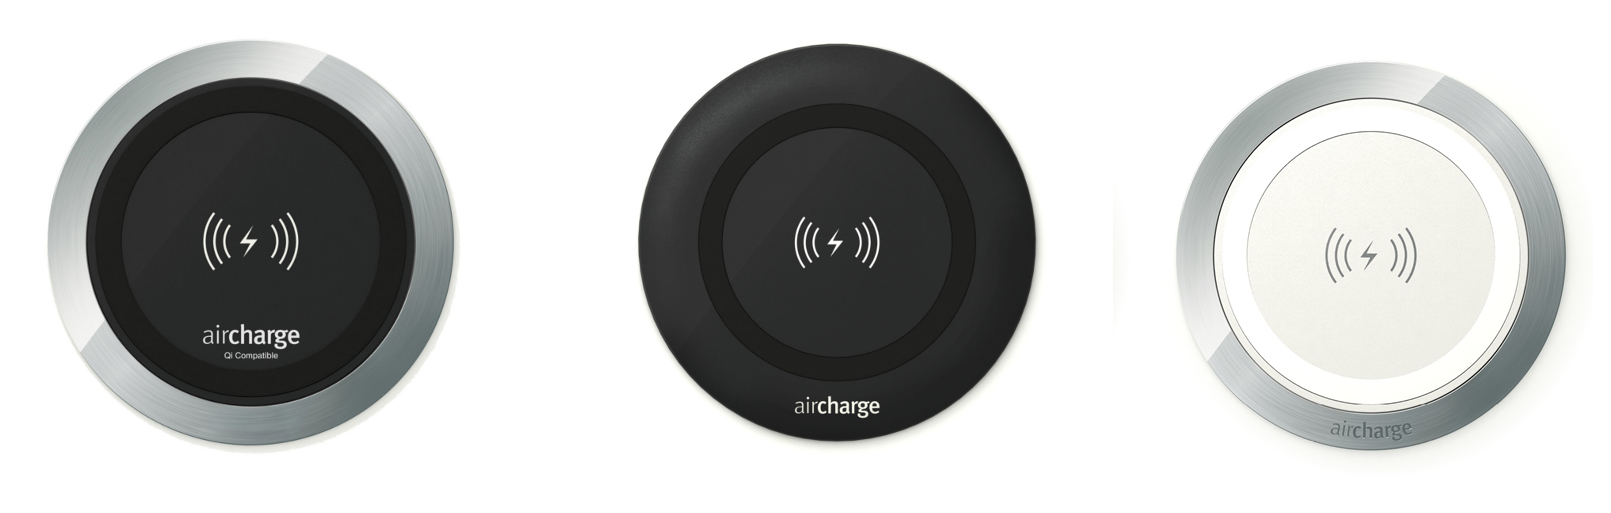 airchargecolors.jpg